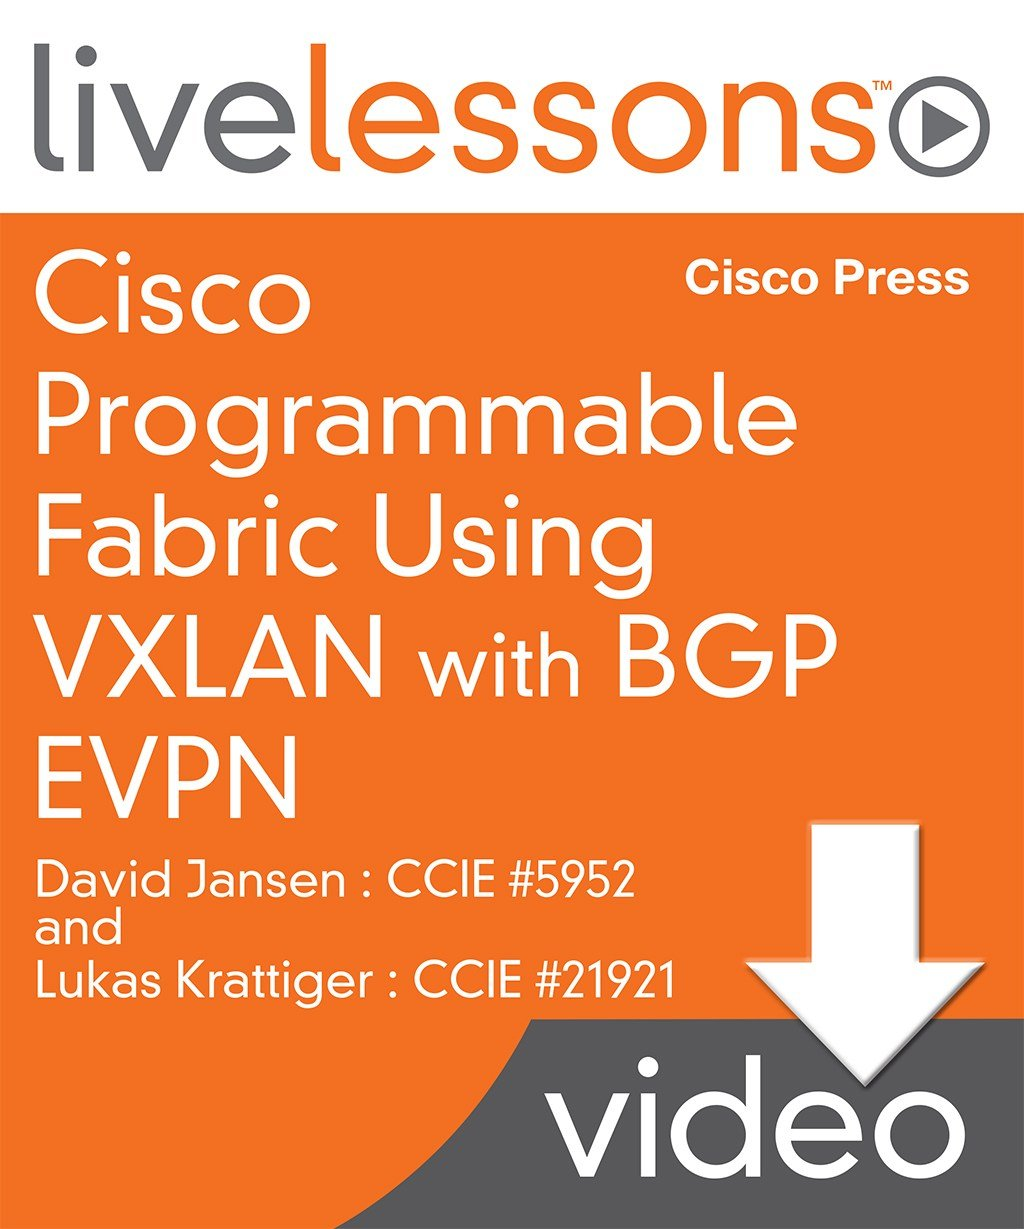 Bgp Troubleshooting Livelessons: Download Cisco Programmable Fabric Using VXLAN With BGP